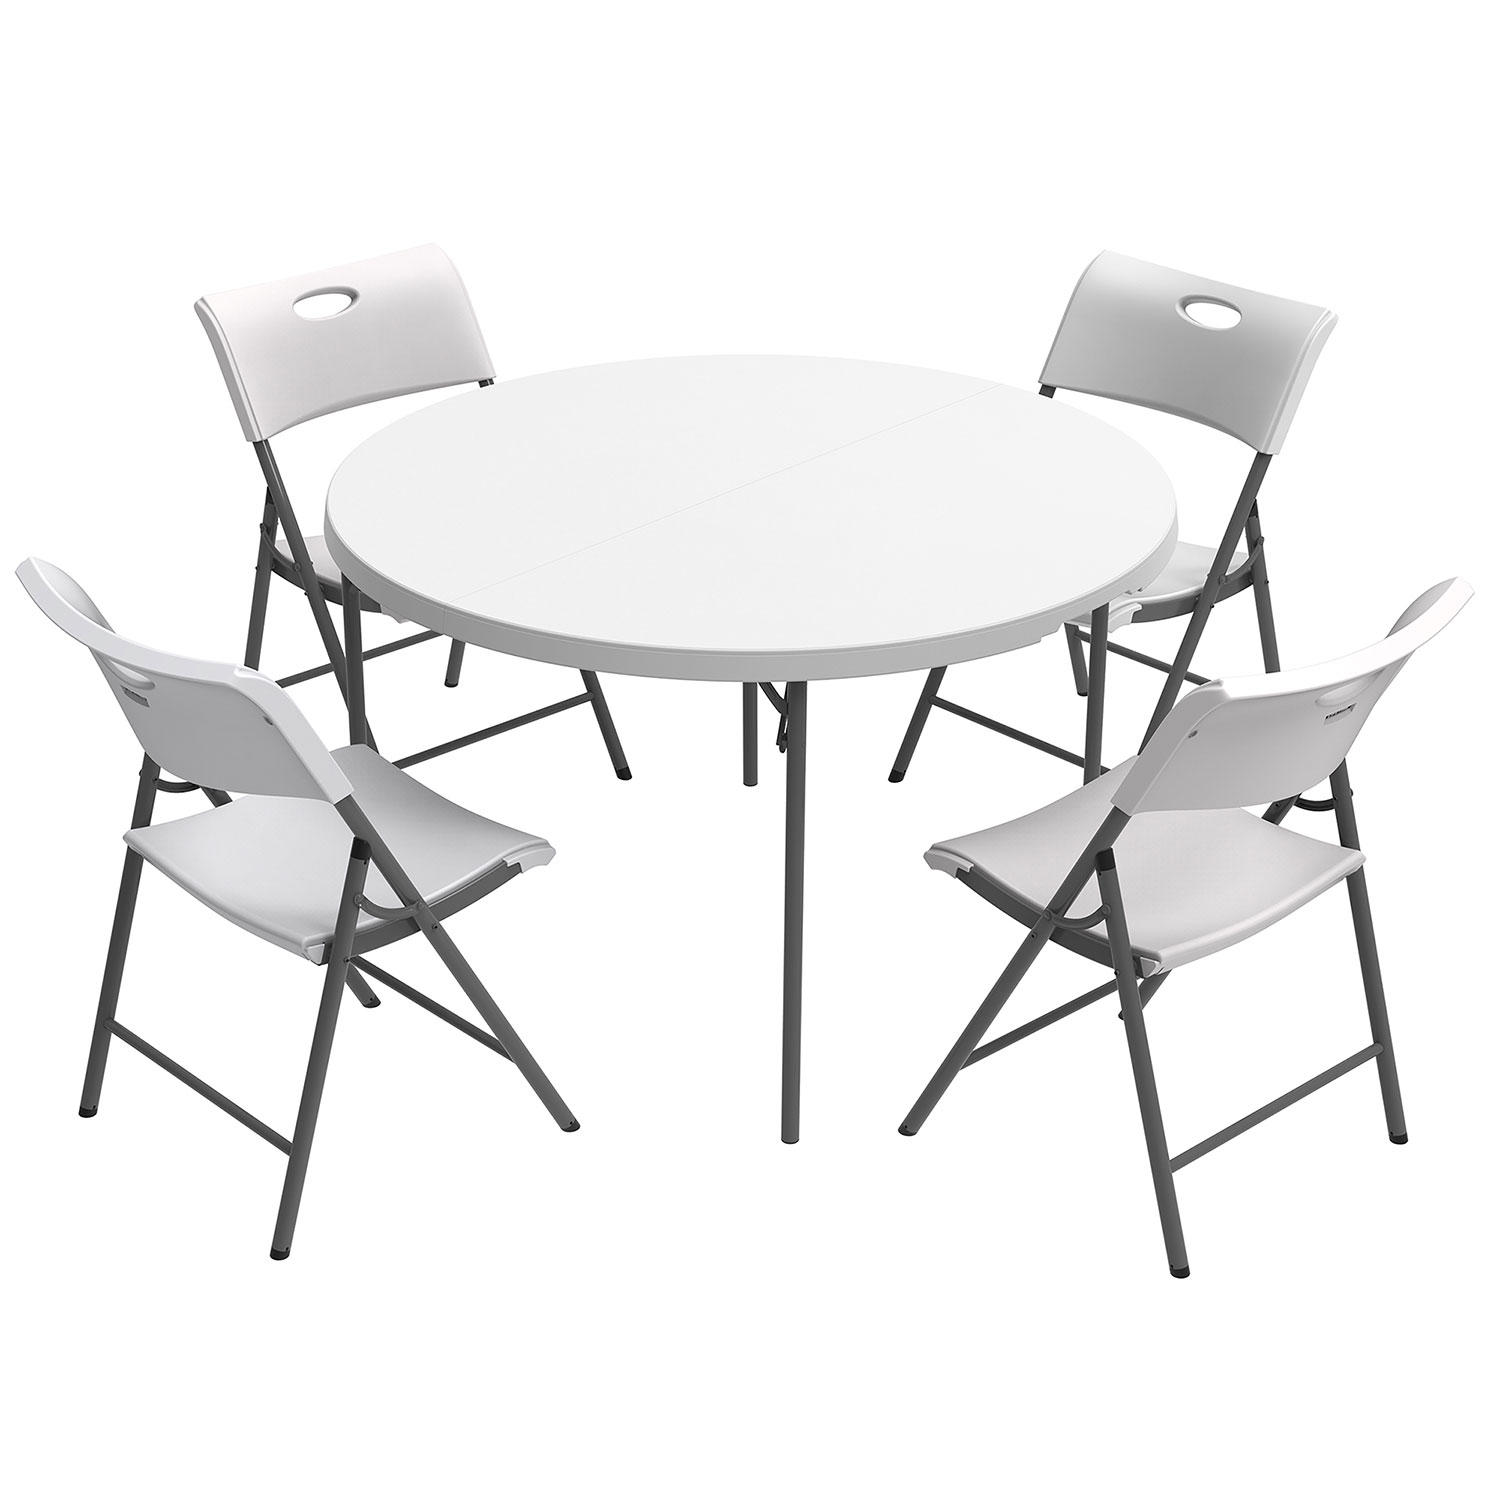 "48"" Round Fold In Half Commercial Grade Table & 4 Folding Chairs"